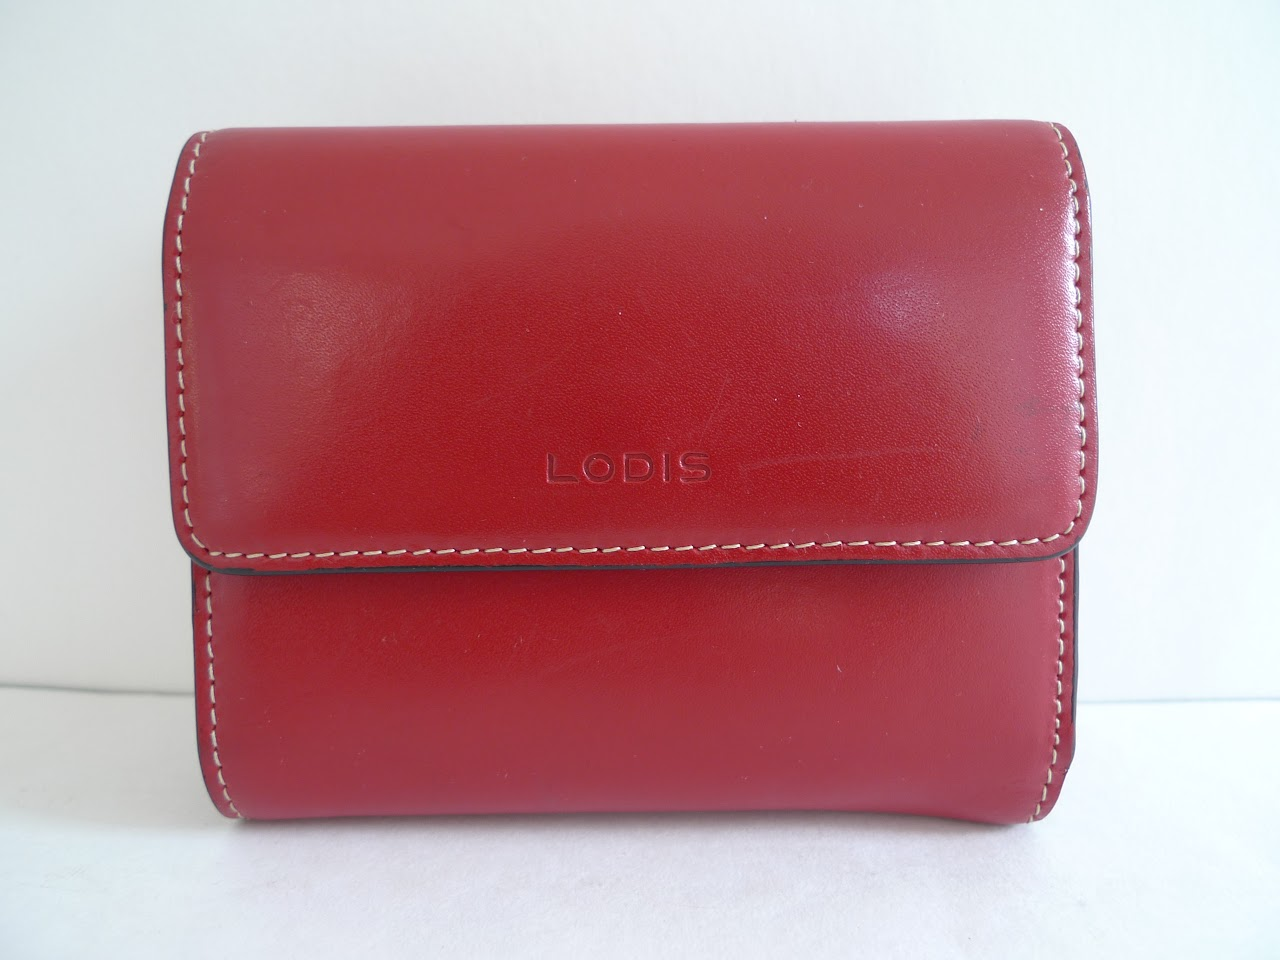 Lodis Red Wallet